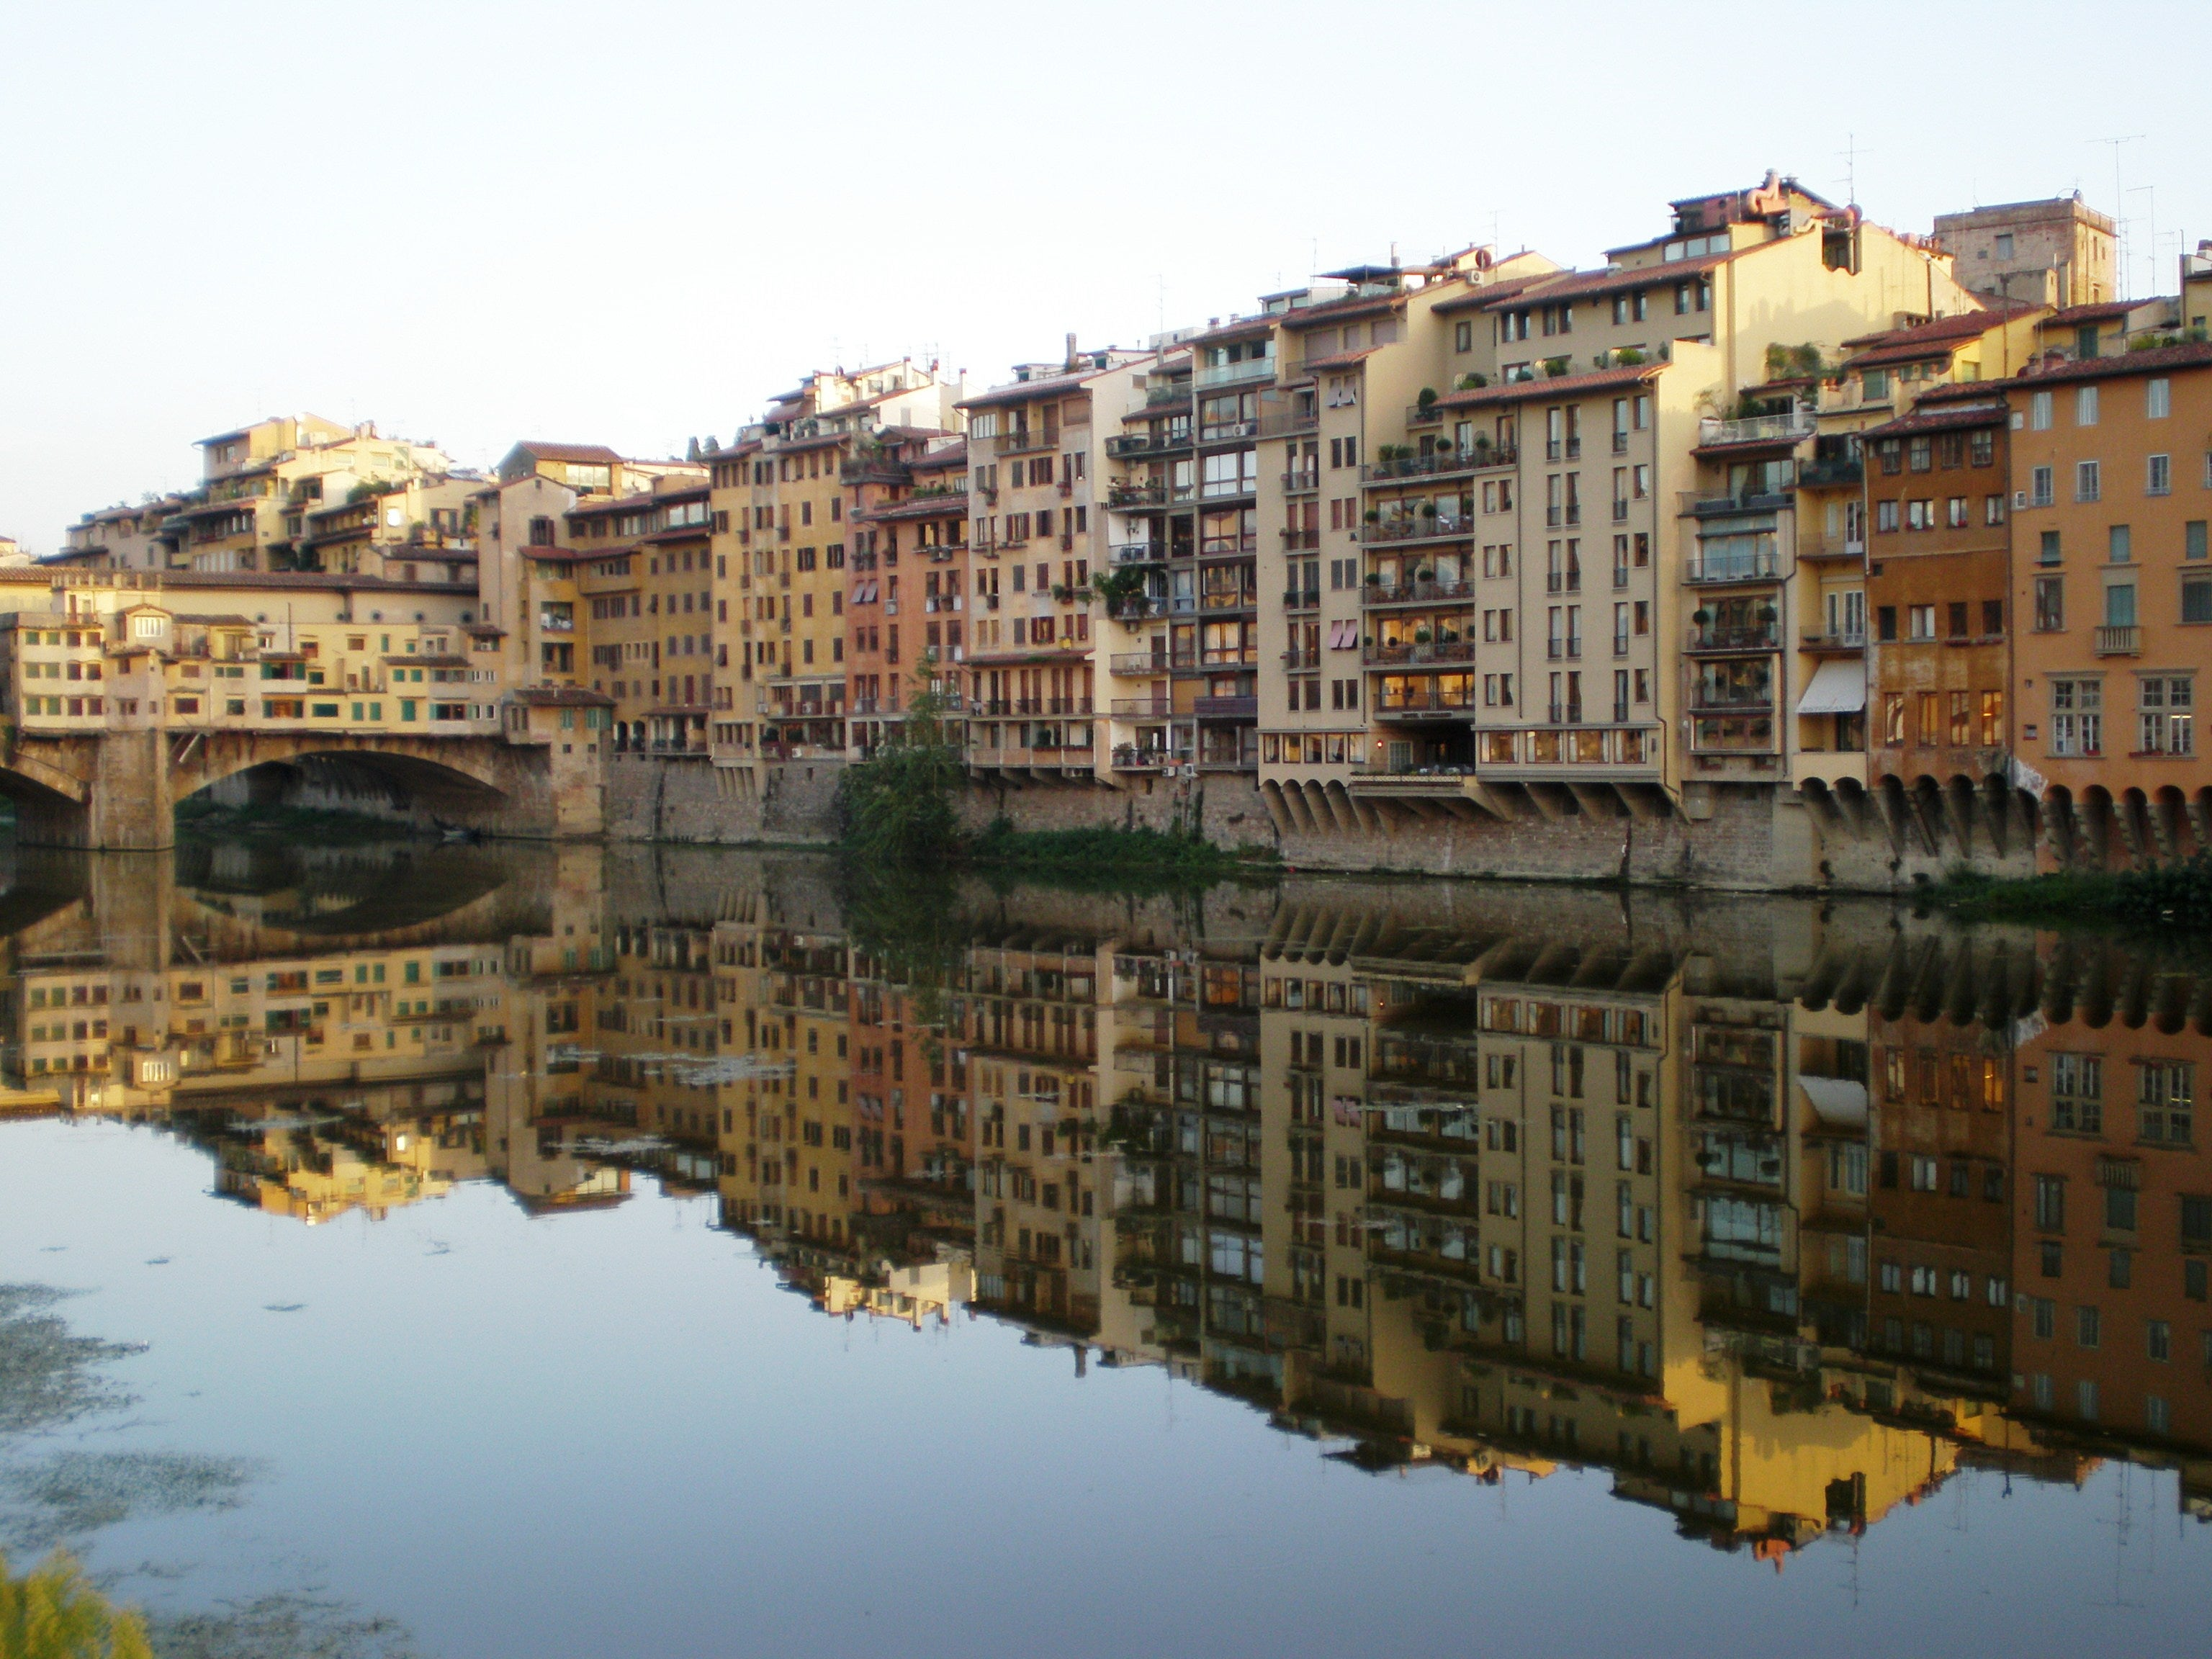 Reflection in Florence